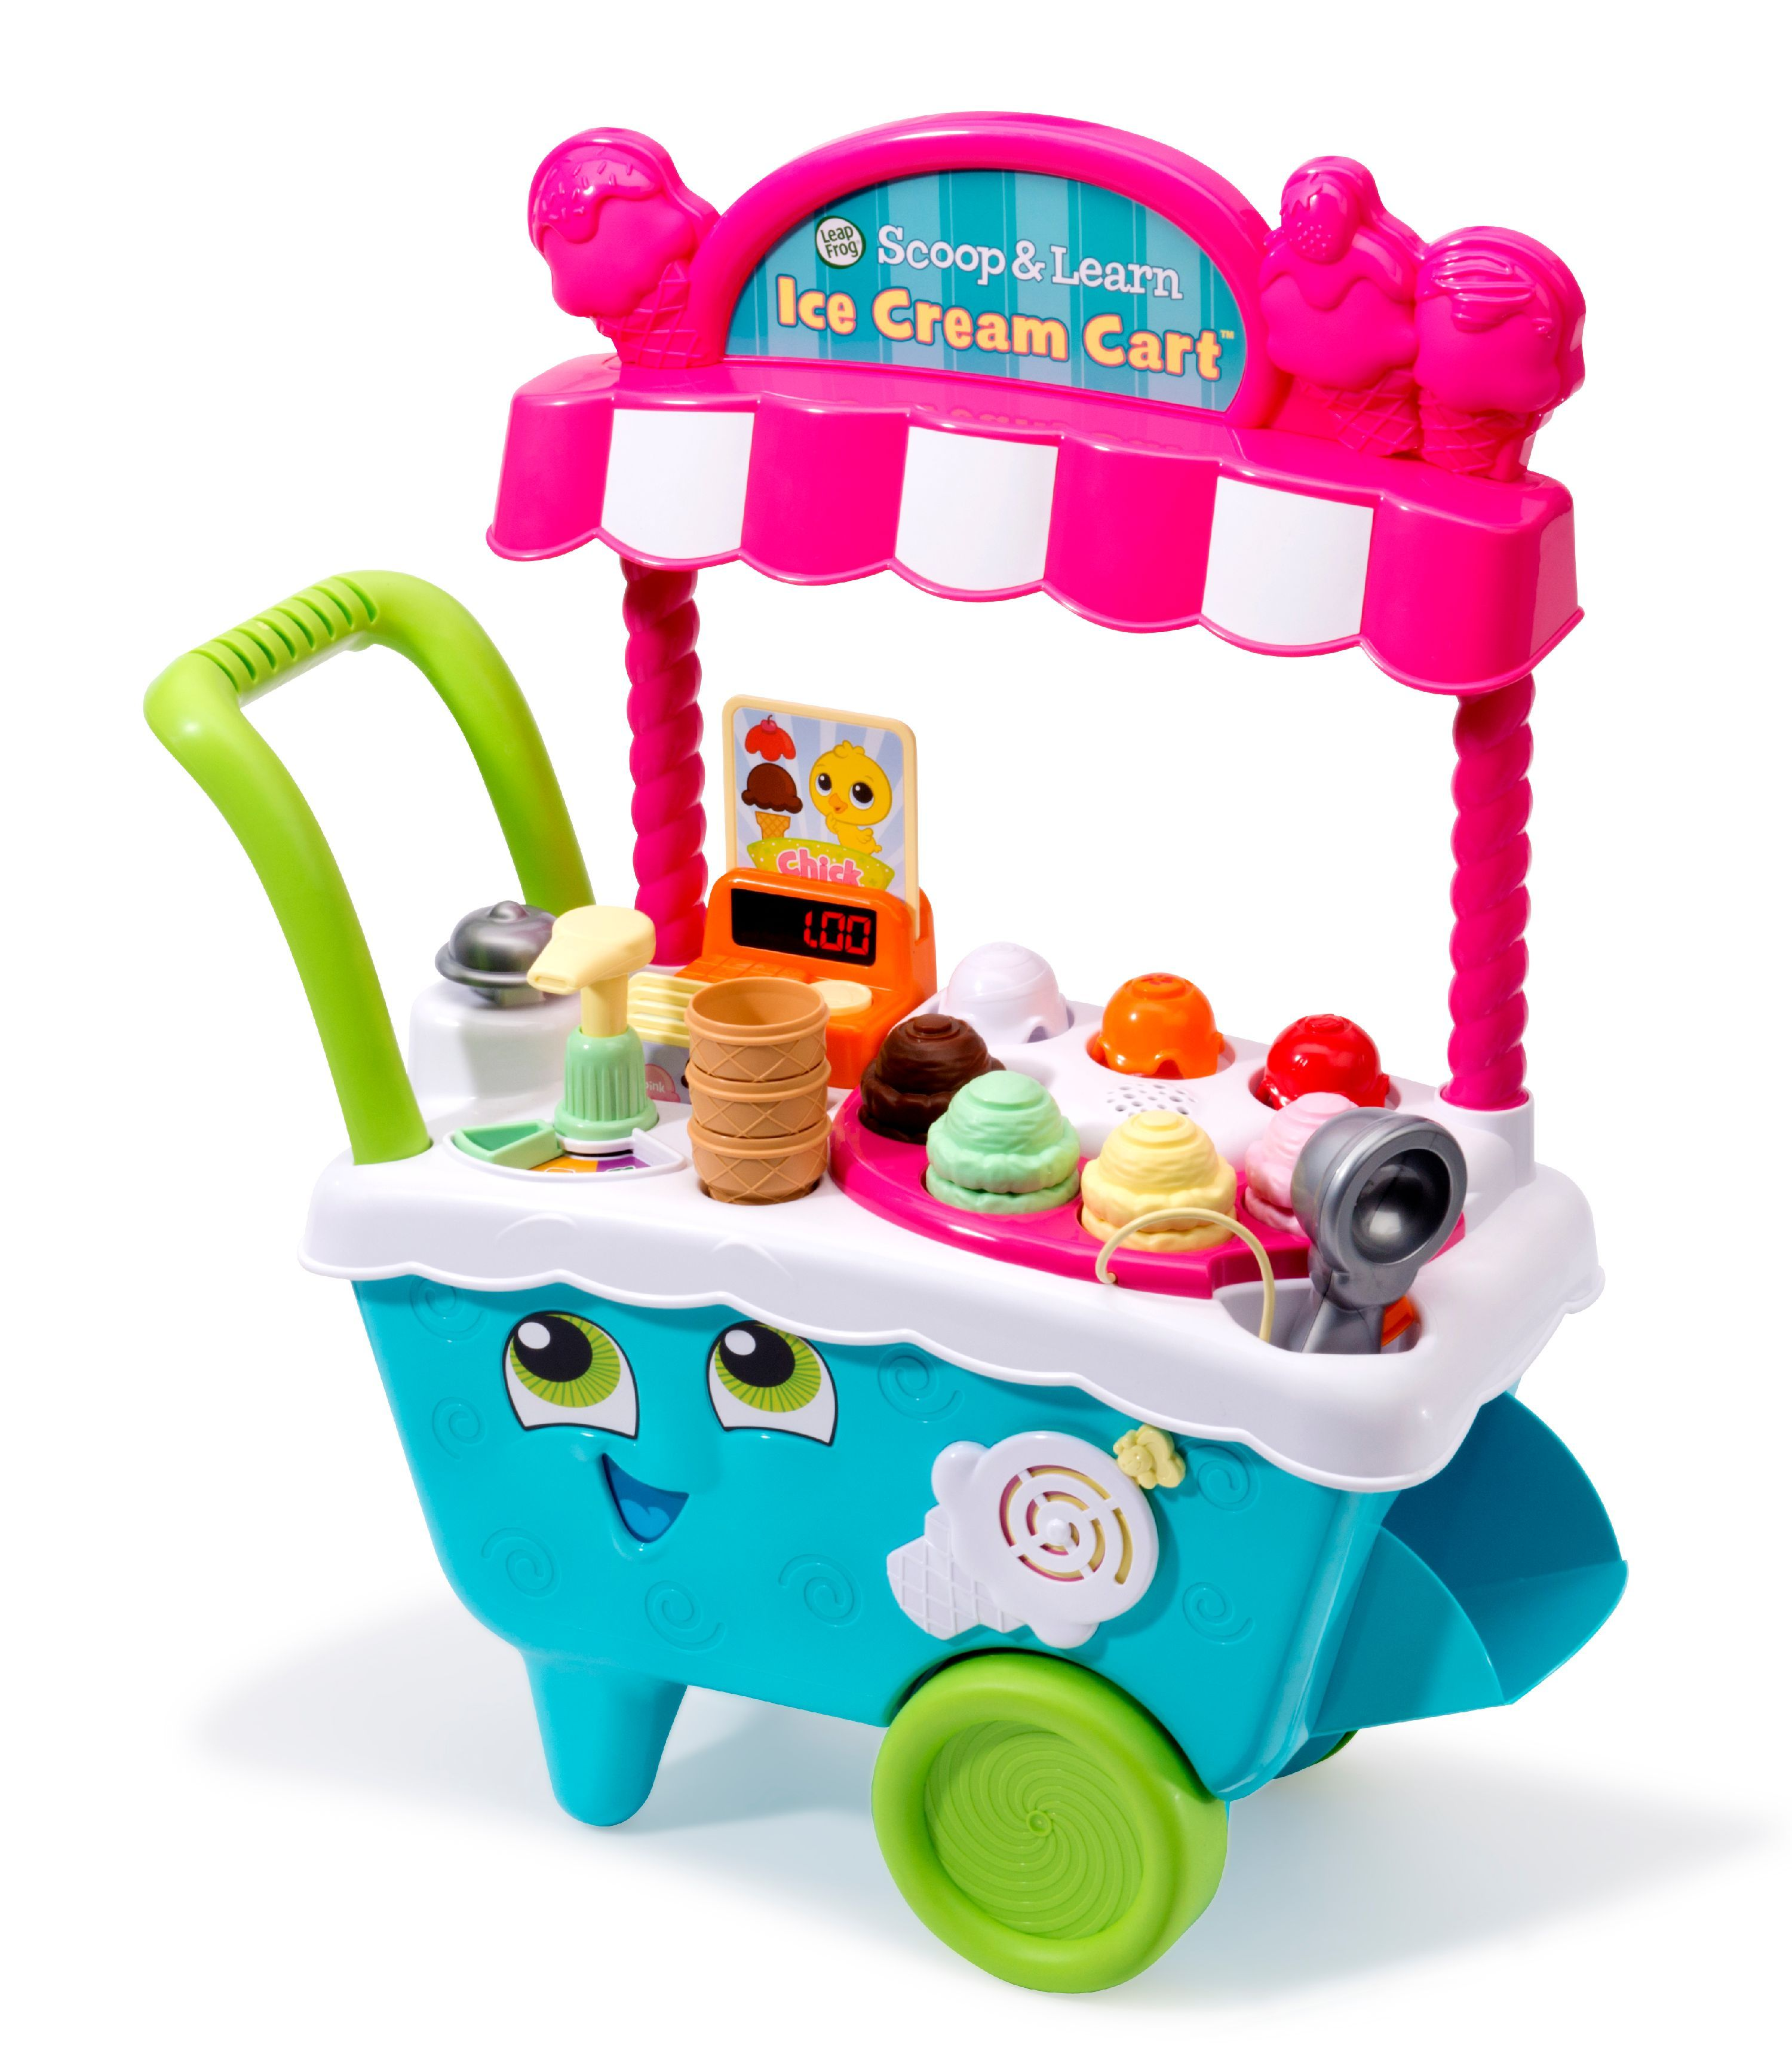 27 Best Toys For 2 Year Olds 2020 Top Gifts For 24 Month Old Boys And Girls